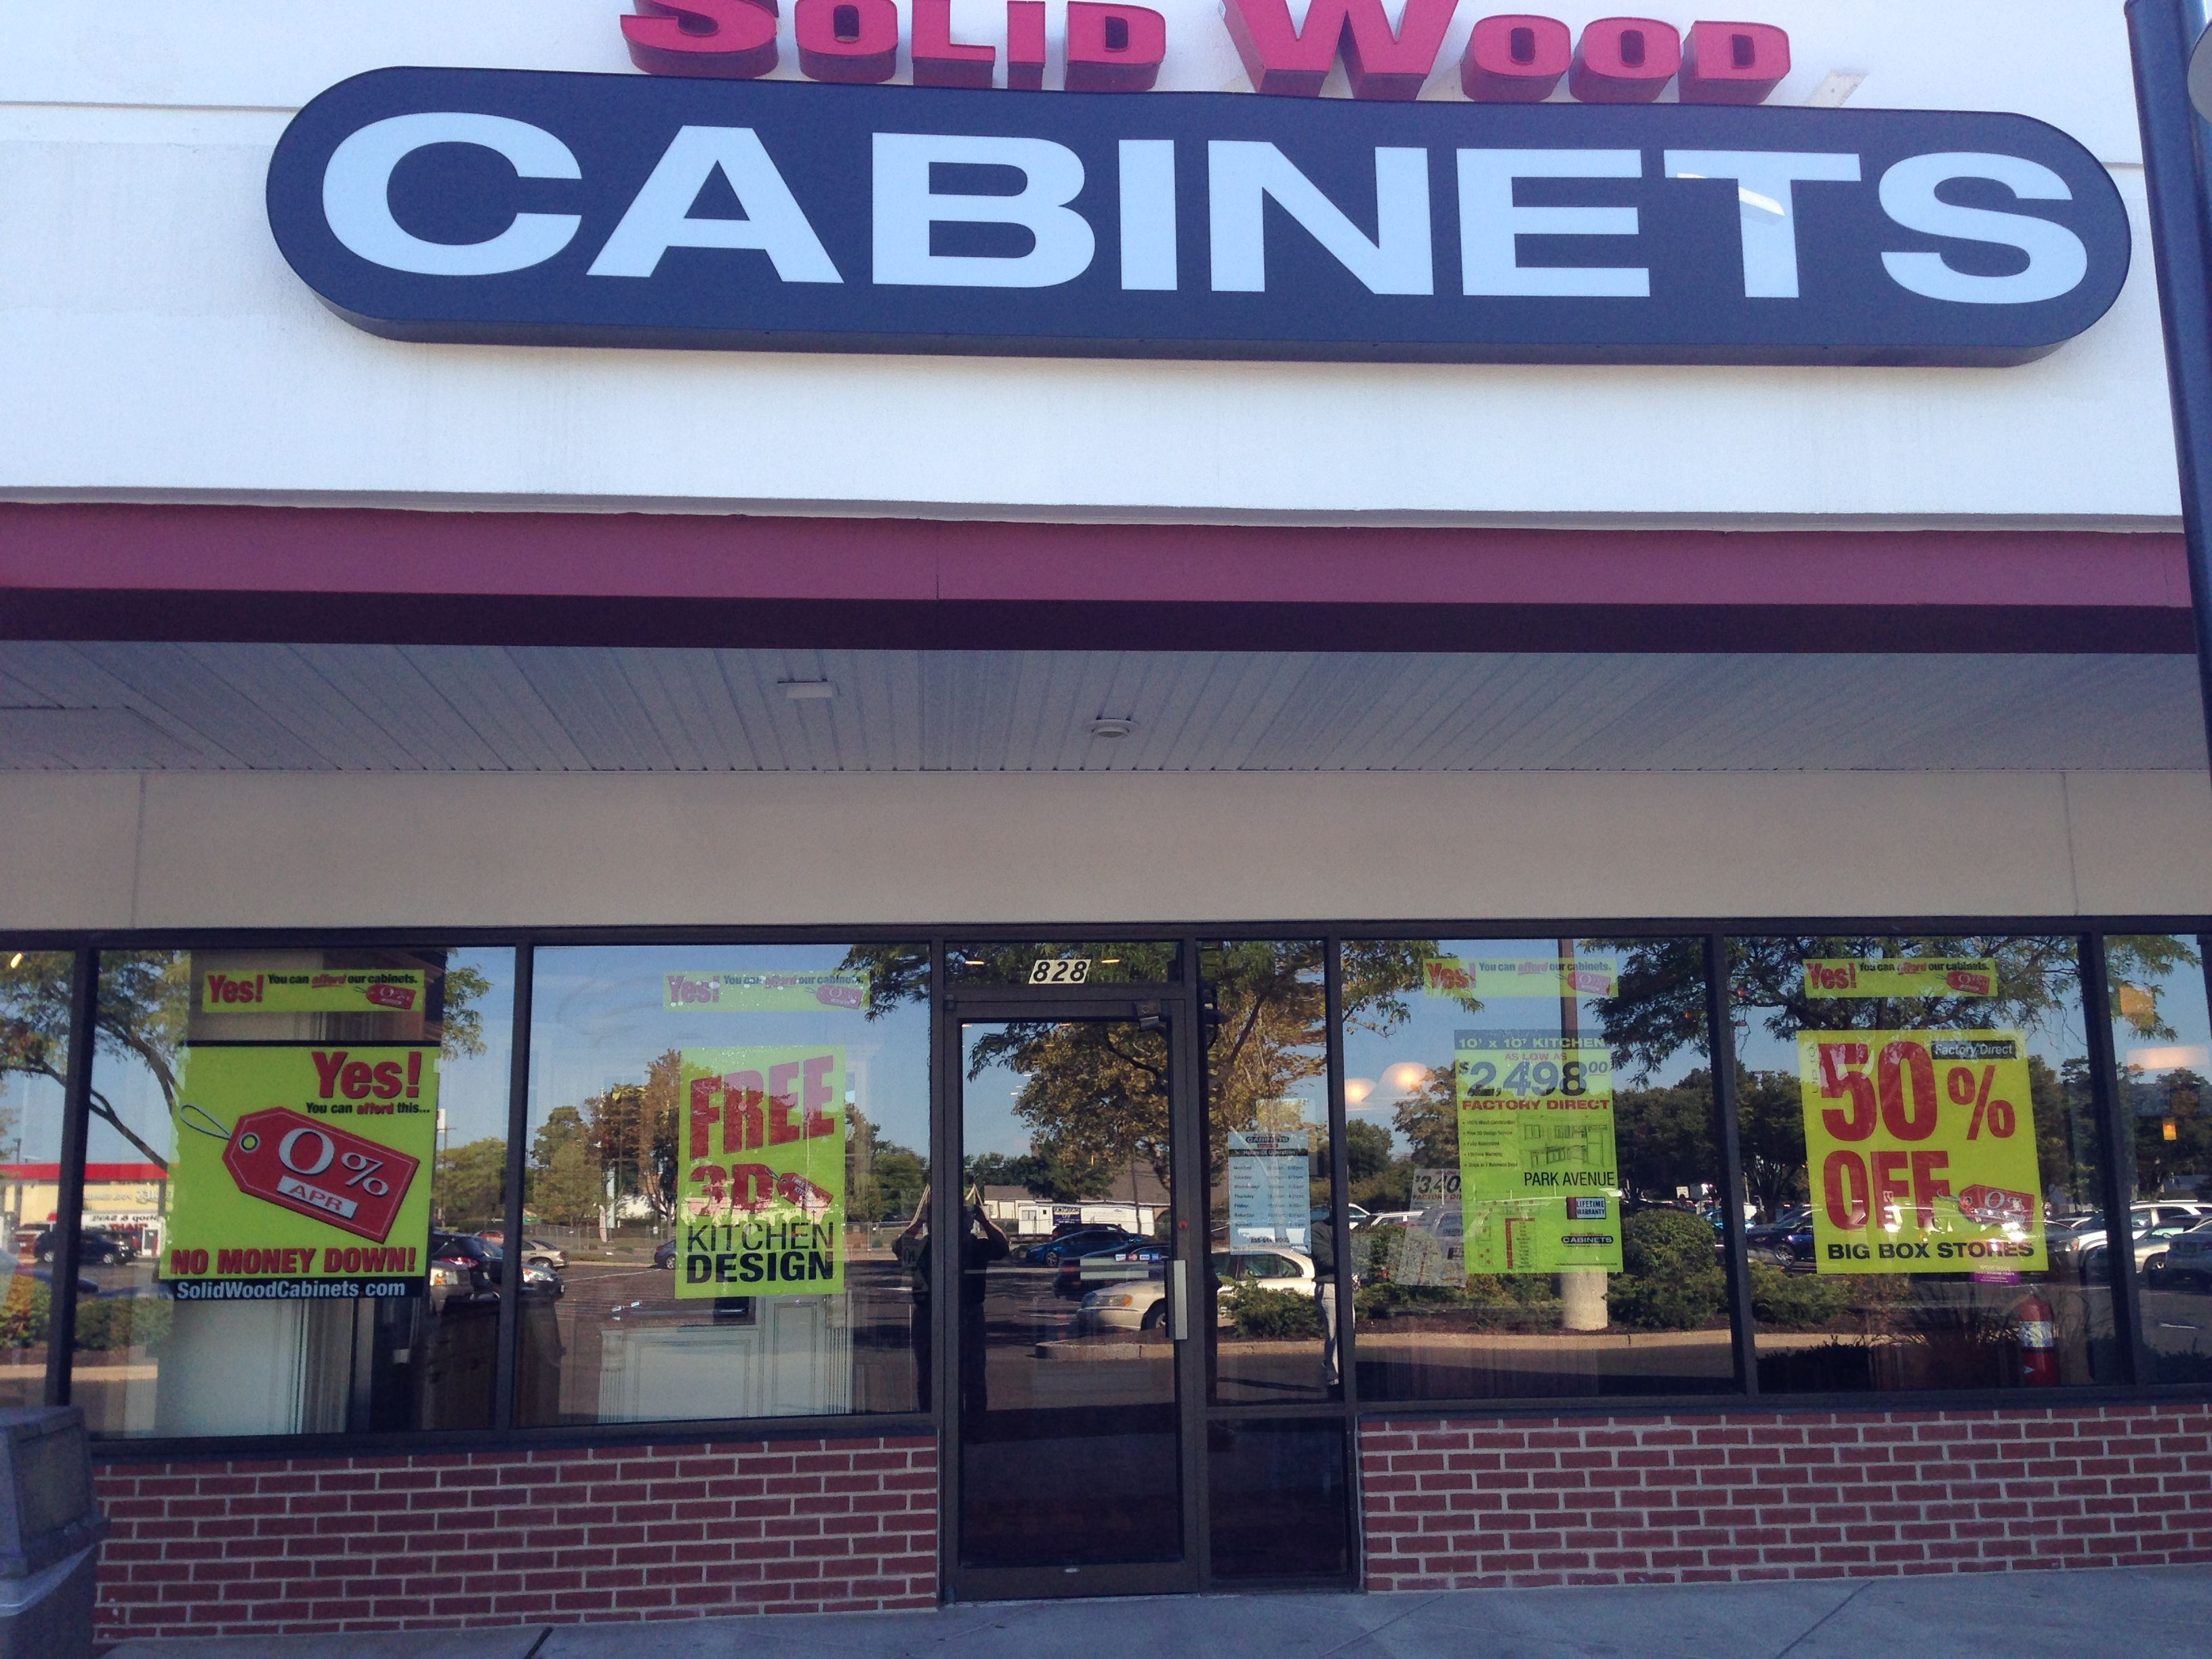 The Solid Wood Cabinets Company Showroom In Warminster Pa Center Point Place 828 West Street Road 18974 267 587 0603